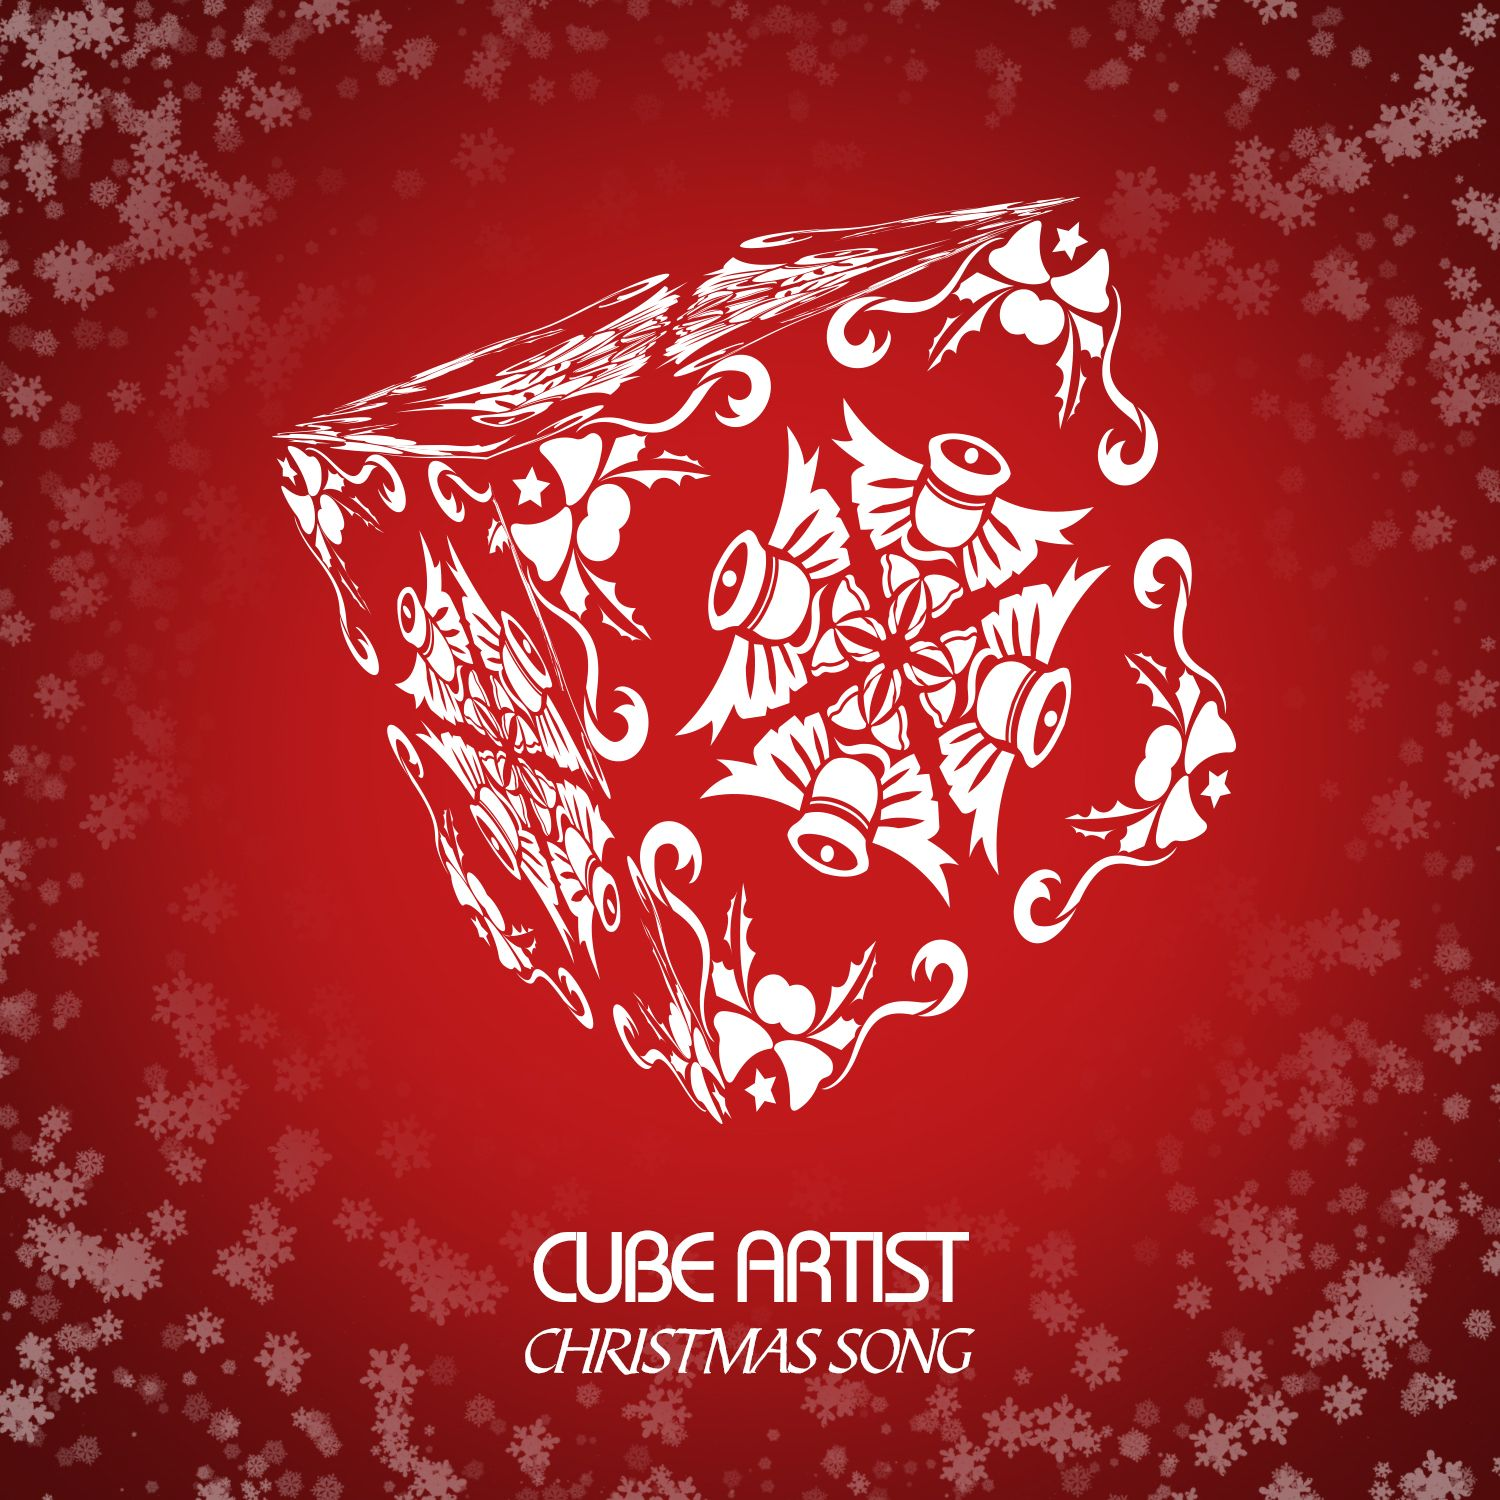 [Single] Cube Artist - Christmas Song